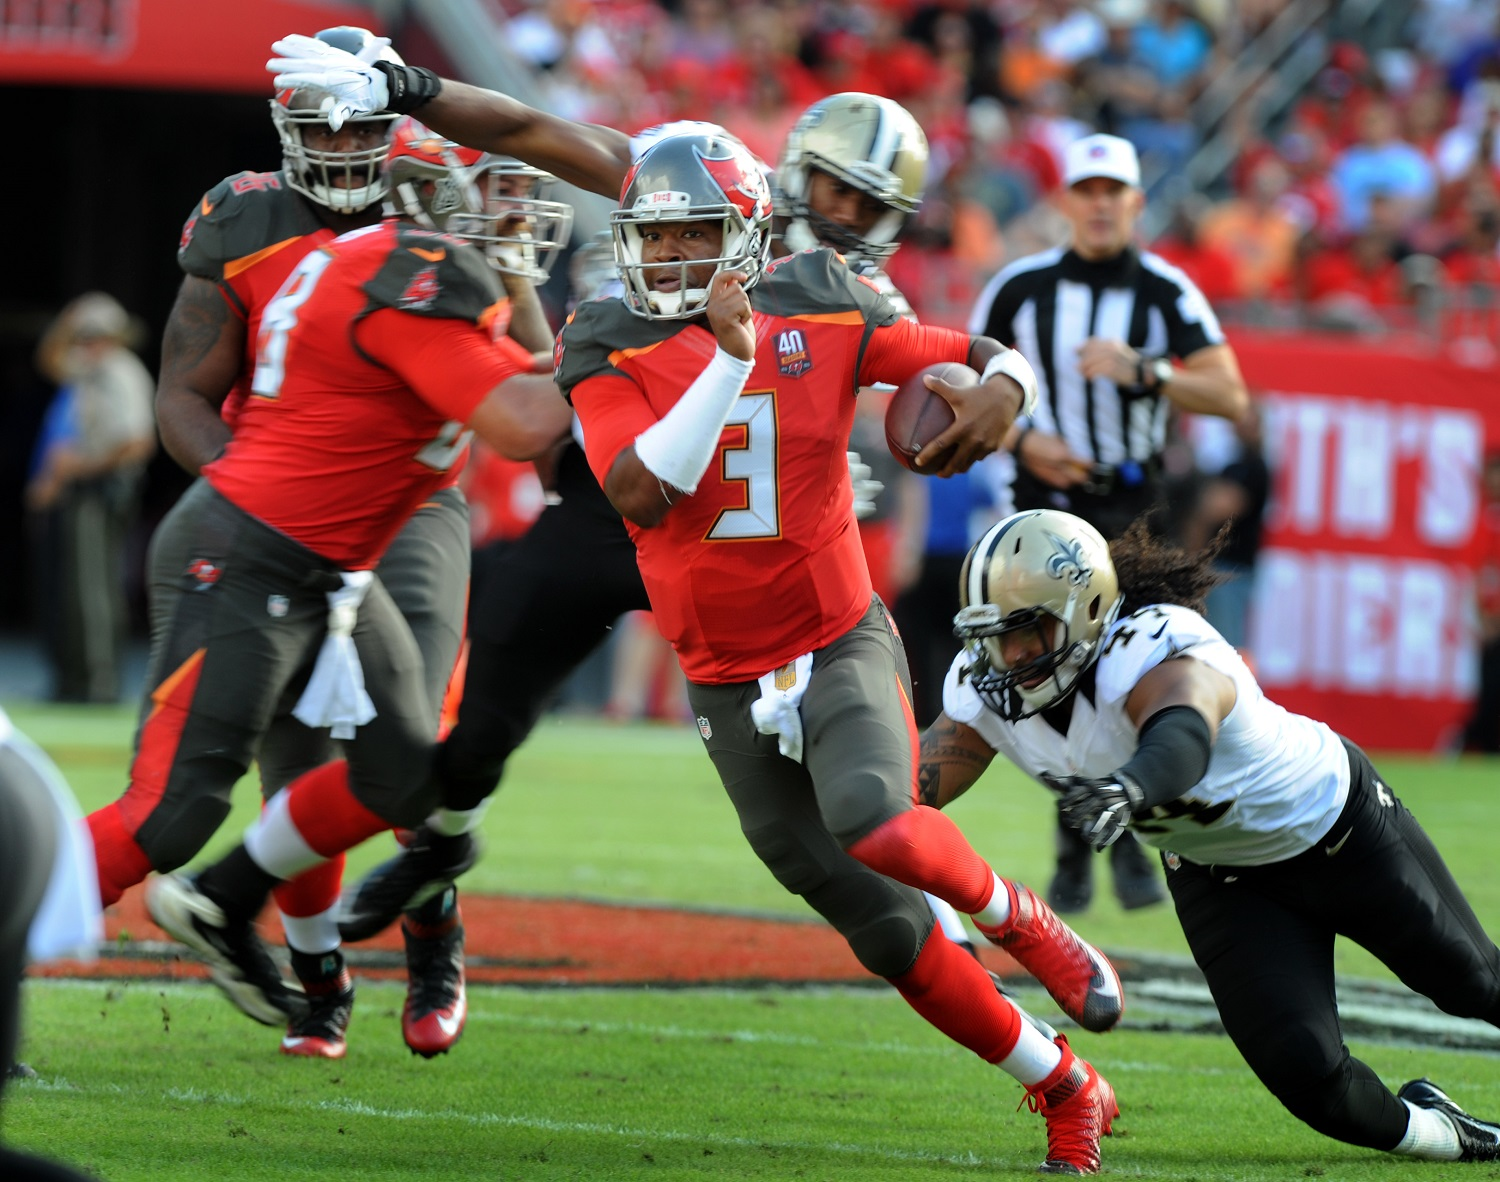 TAMPA, FL - DECEMBER 13: Quarterback Jameis Winston #3 of the Tampa Bay Buccaneers scrambles for a big gain in the second quarter against the New Orleans Saints at Raymond James Stadium on December 13, 2015 in Tampa, Florida. (Photo by Cliff McBride/Getty Images)